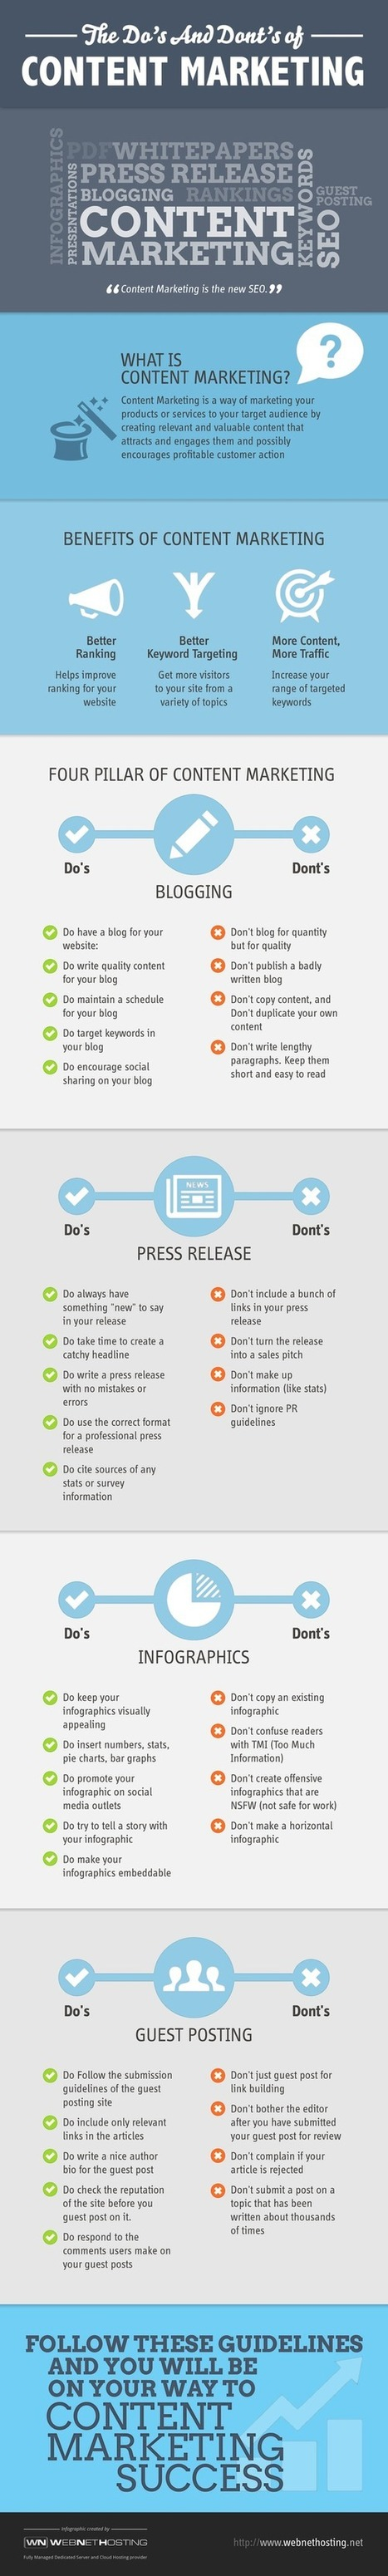 The Do's and Dont's of Content Marketing - Infographic | Advanced SEO | Social Media Tips | Scoop.it